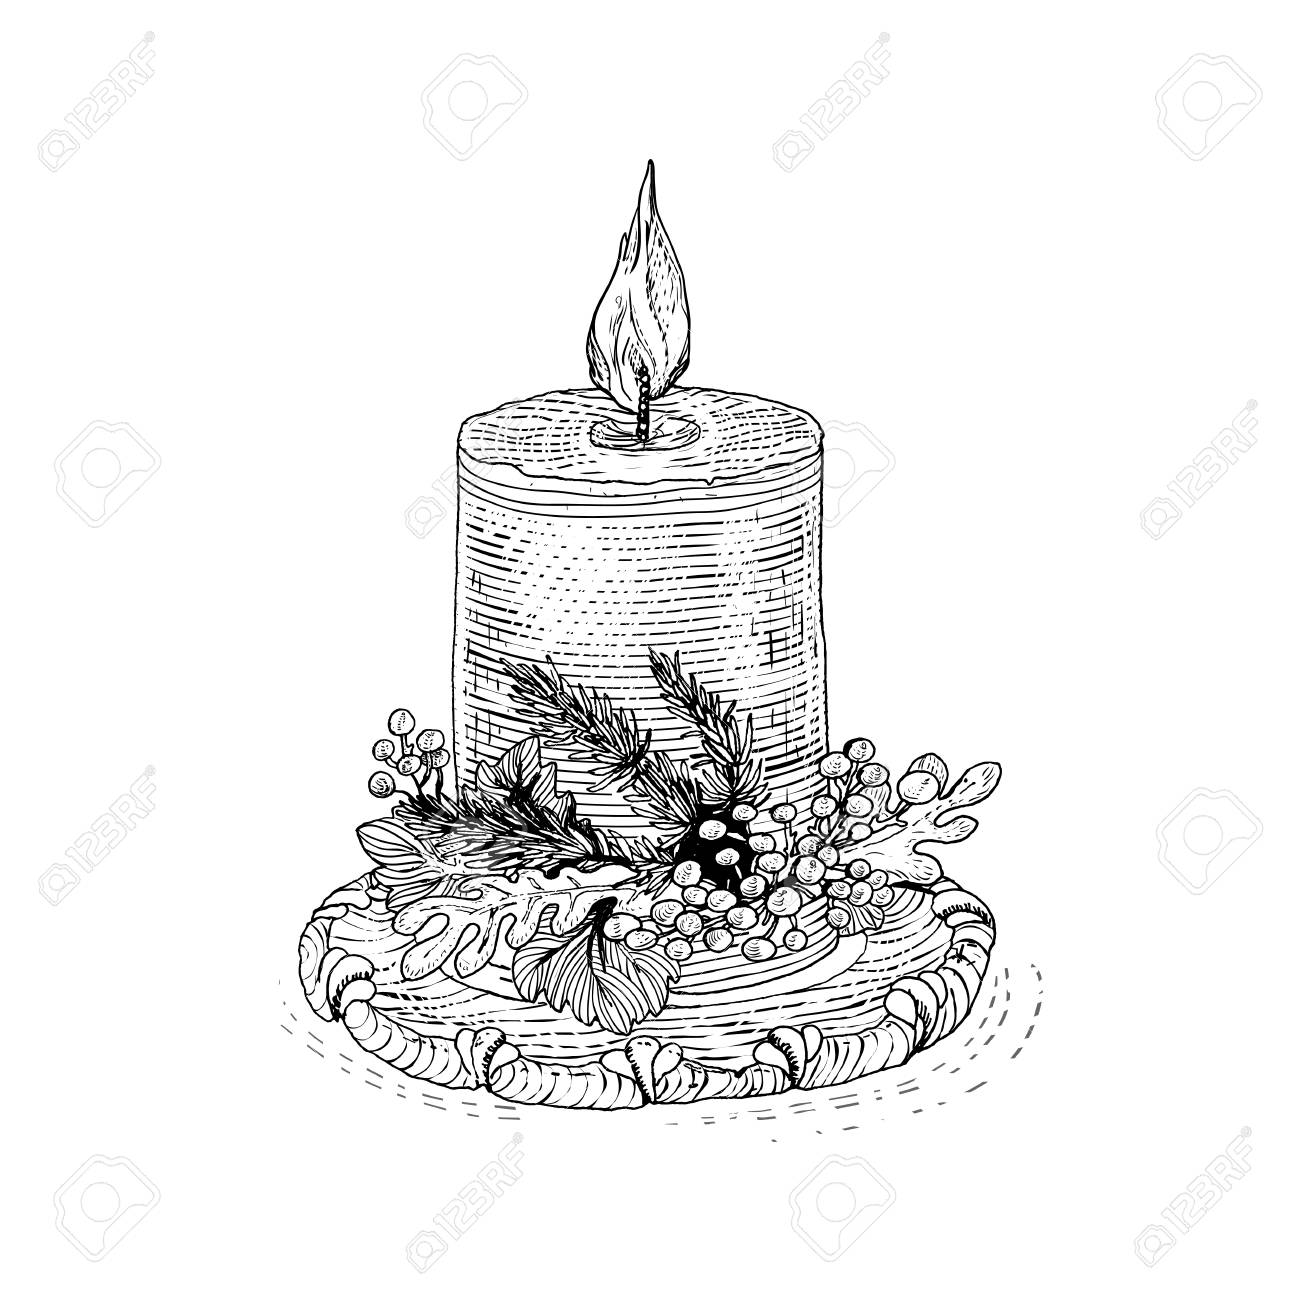 ink drawn candle for gift design vector vintage engraving sketch